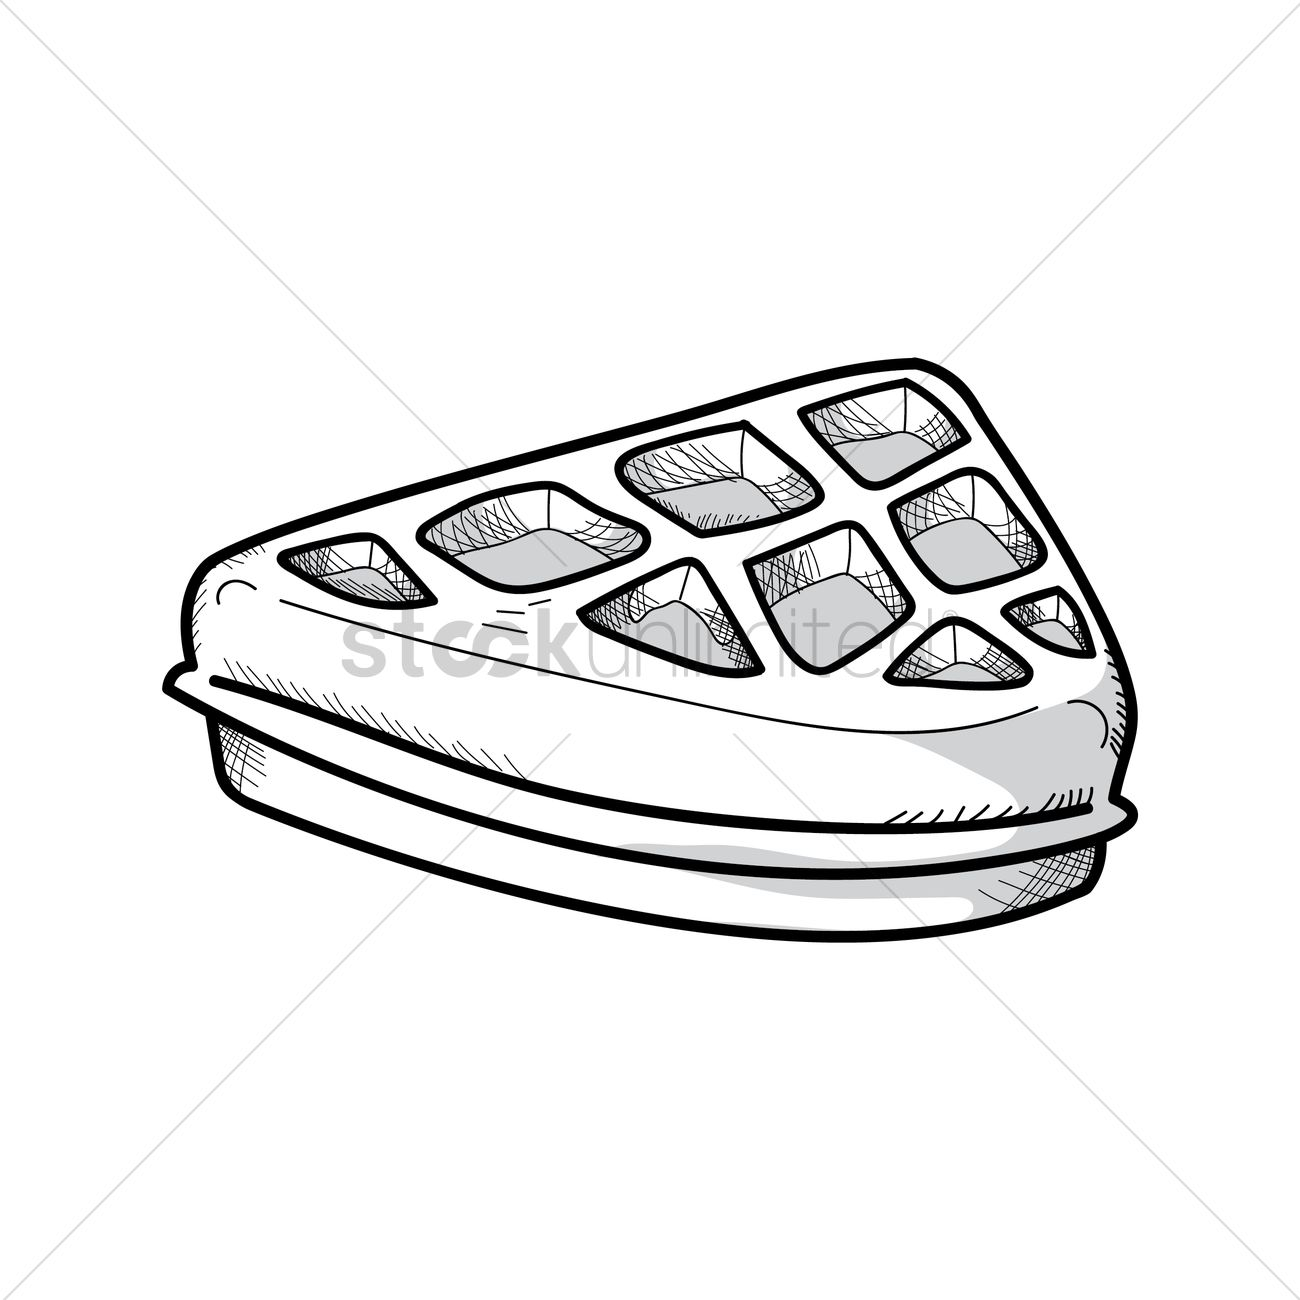 waffle clipart sketch